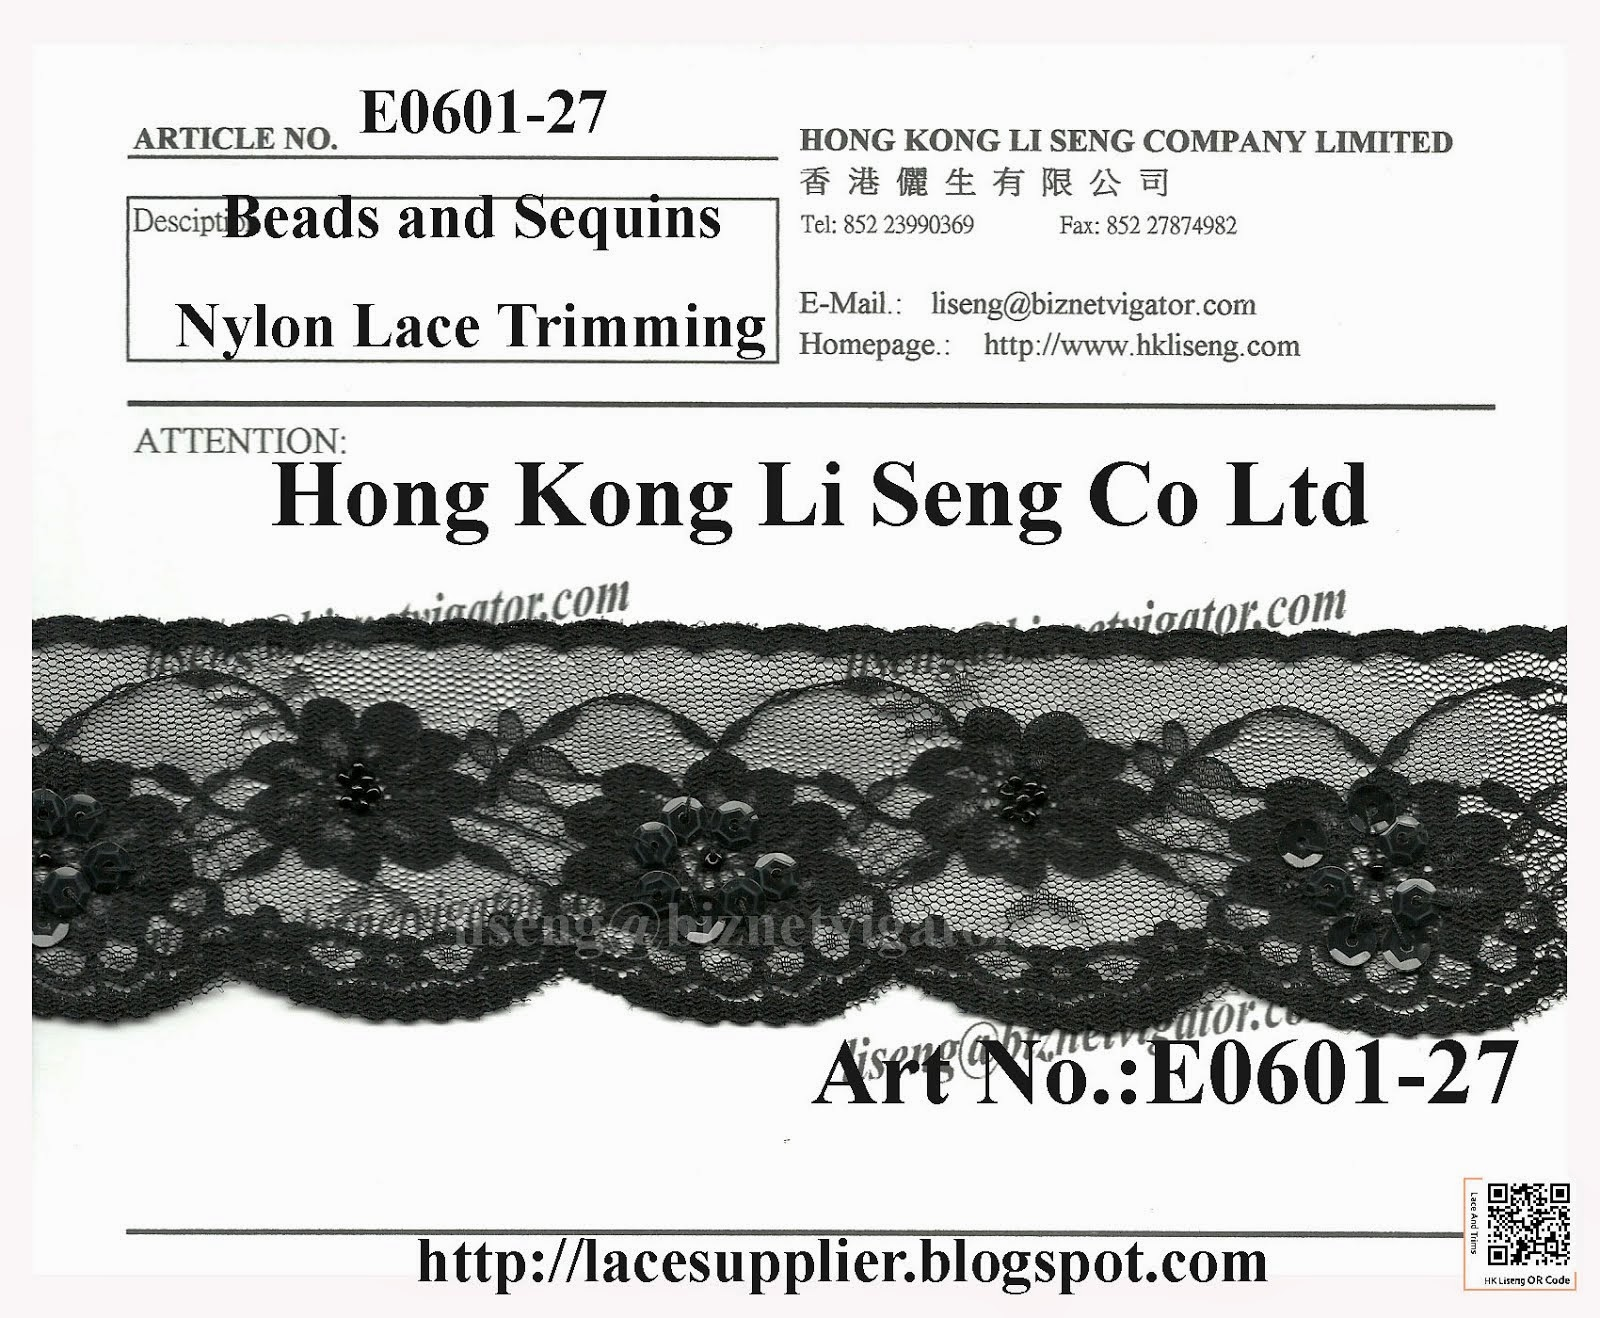 Nylon Lace Trimming With Beads and Sequins Manufacturer - Hong Kong Li Seng Co Ltd